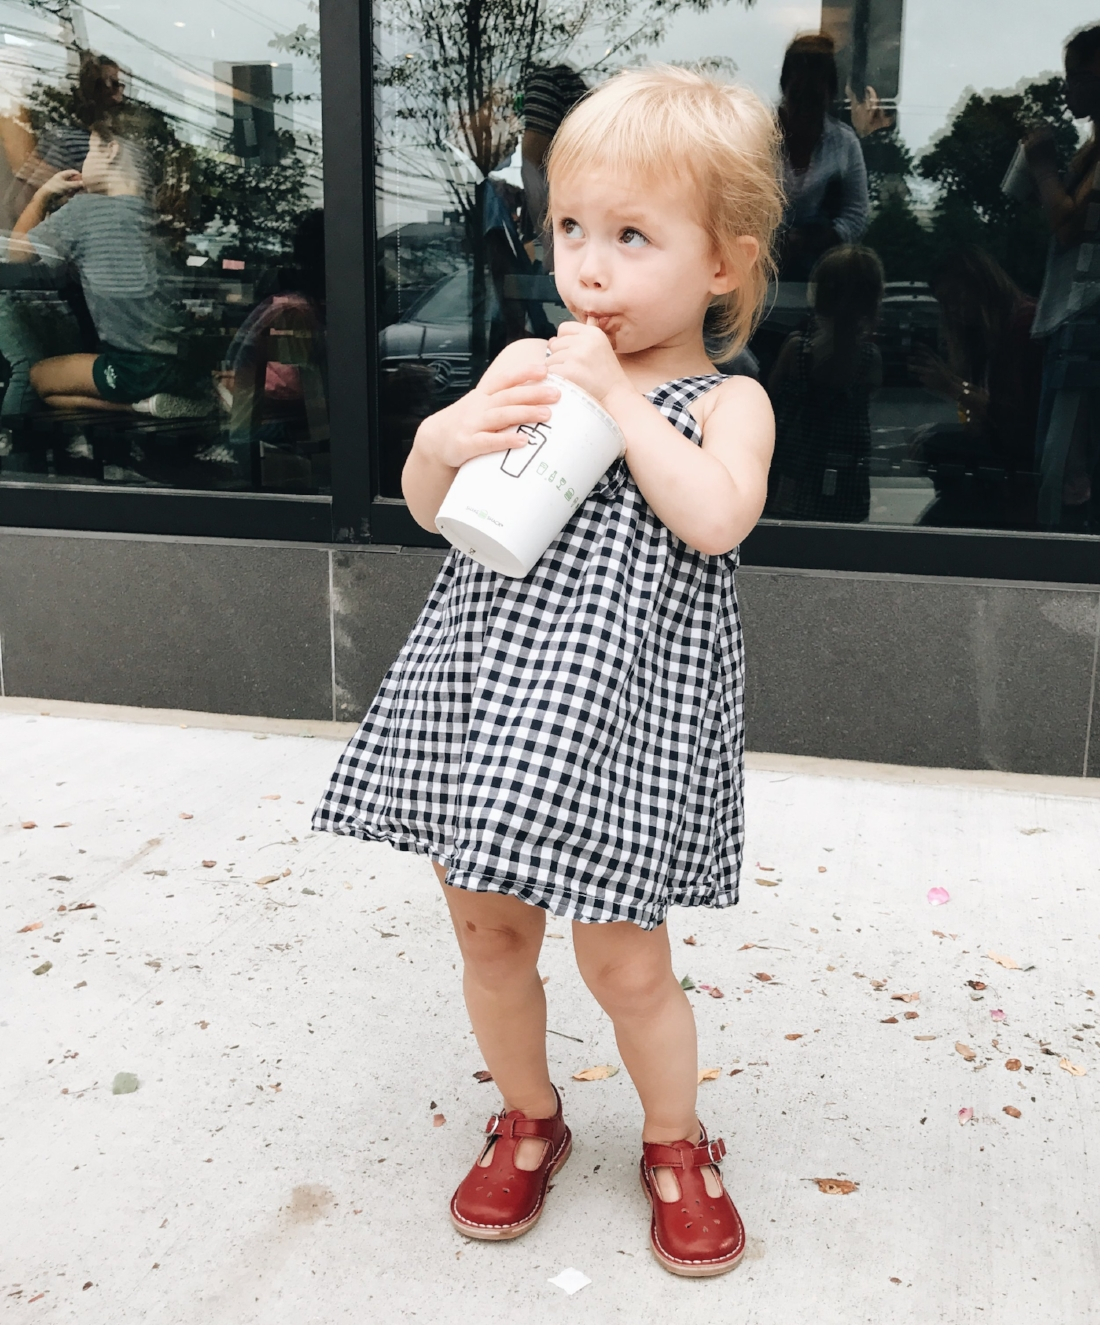 {My girl in her favorite ruby red slippers}